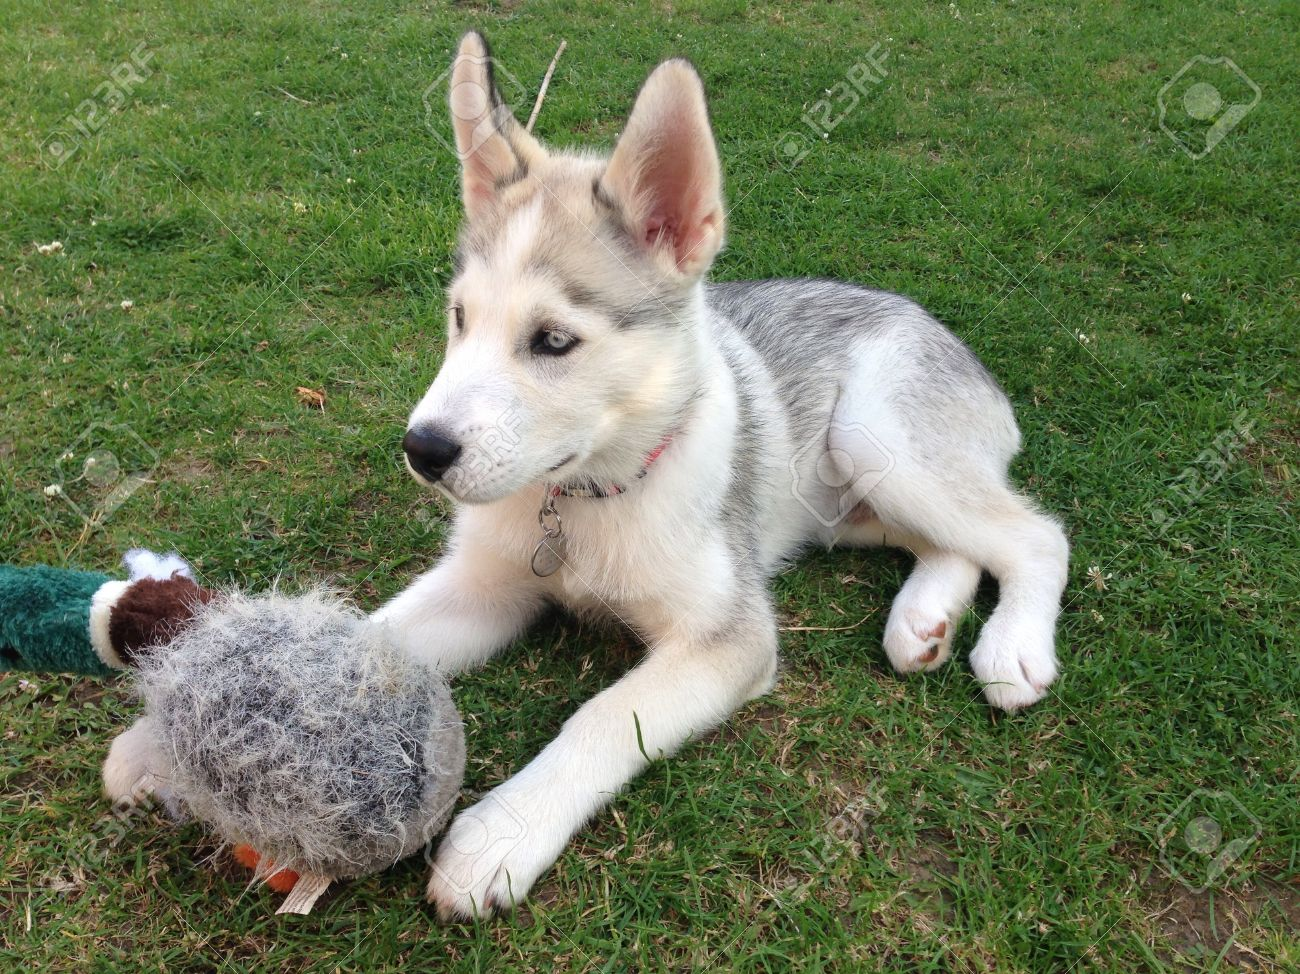 Siberian Husky Puppy And His Duck Toy Stock Photo Picture And Royalty Free Image Image 21651399